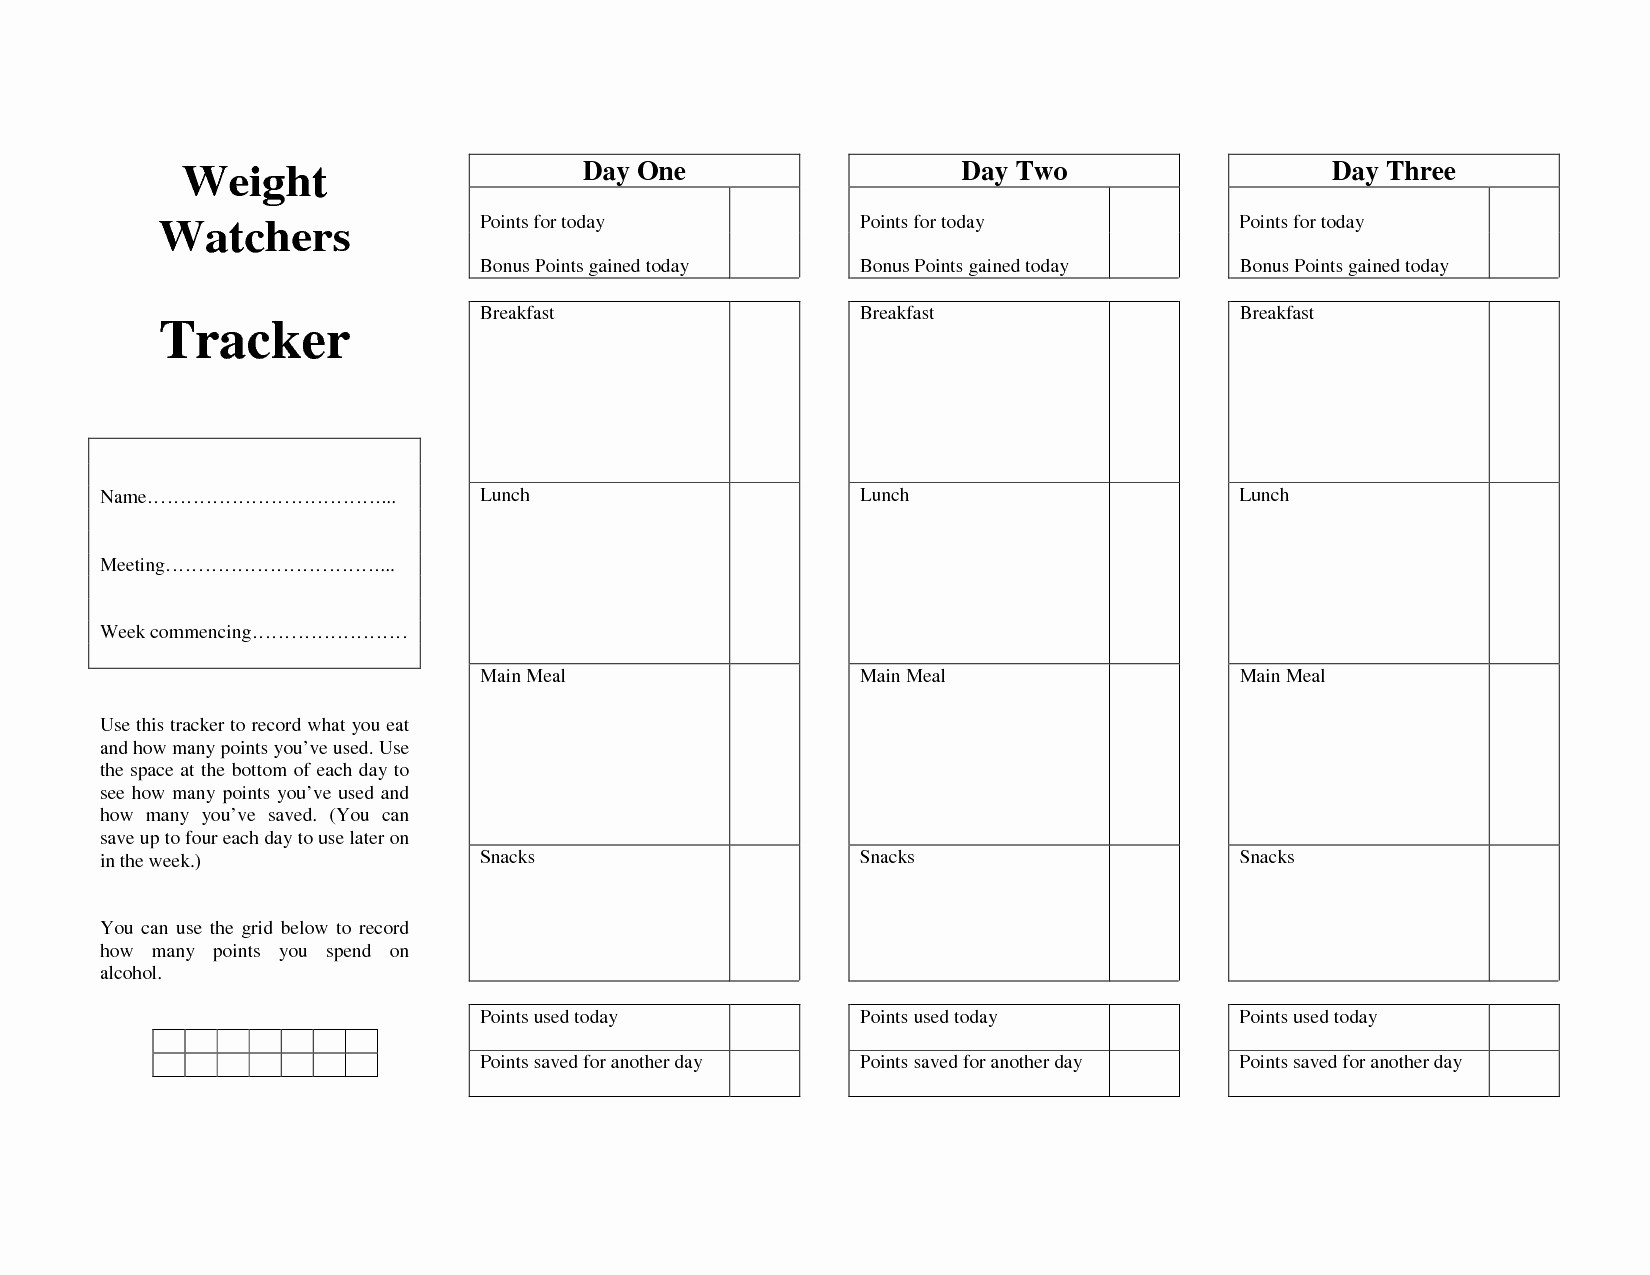 Letter Of Weight Watchers Points Spreadsheet Intended For Weight Watchers Points Spreadsheet Sheet